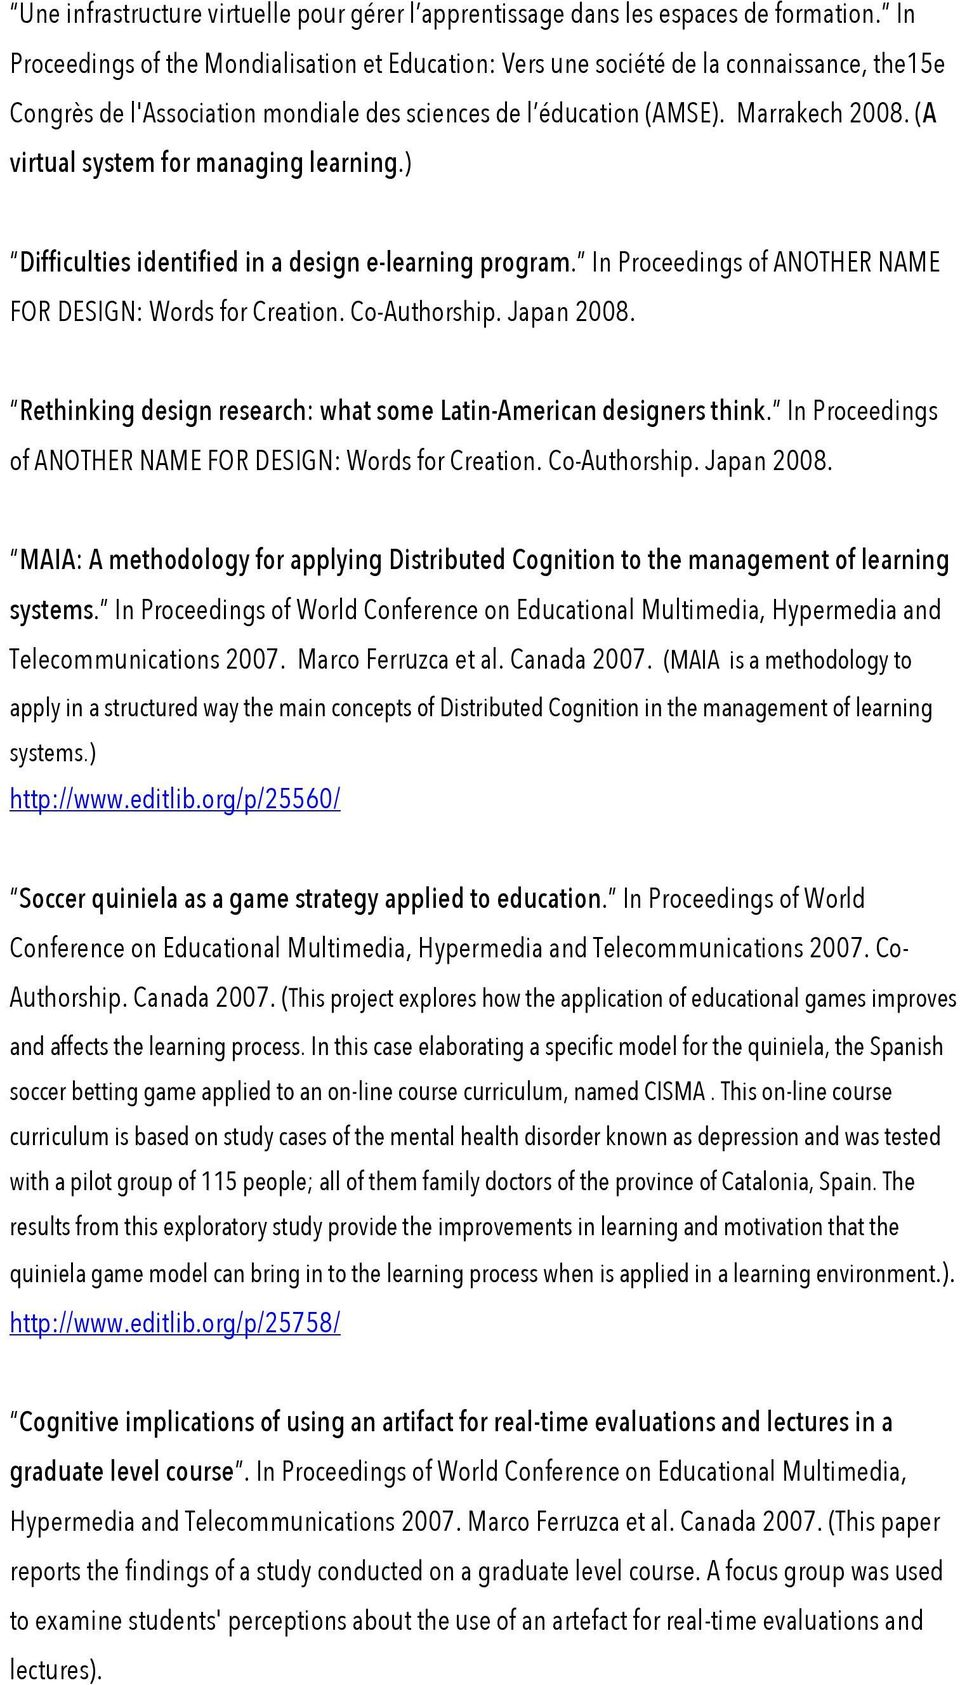 (A virtual system for managing learning.) Difficulties identified in a design e-learning program. In Proceedings of ANOTHER NAME FOR DESIGN: Words for Creation. Co-Authorship. Japan 2008.